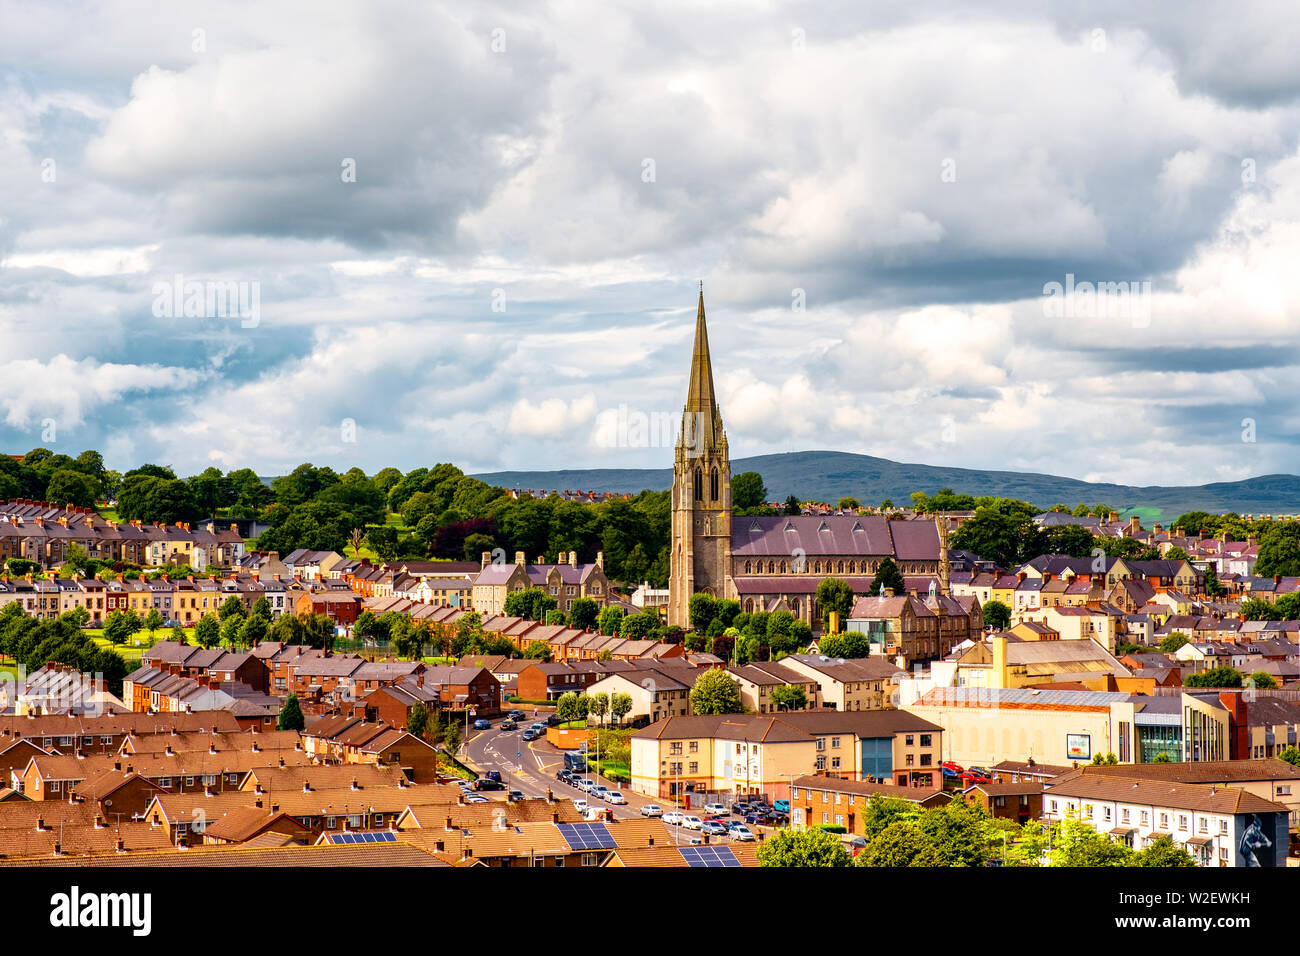 Derry, North Ireland. Aerial view of Derry Londonderry city center in Northern Ireland, UK. Sunny day with cloudy sky, city walls and historical build - Stock Image